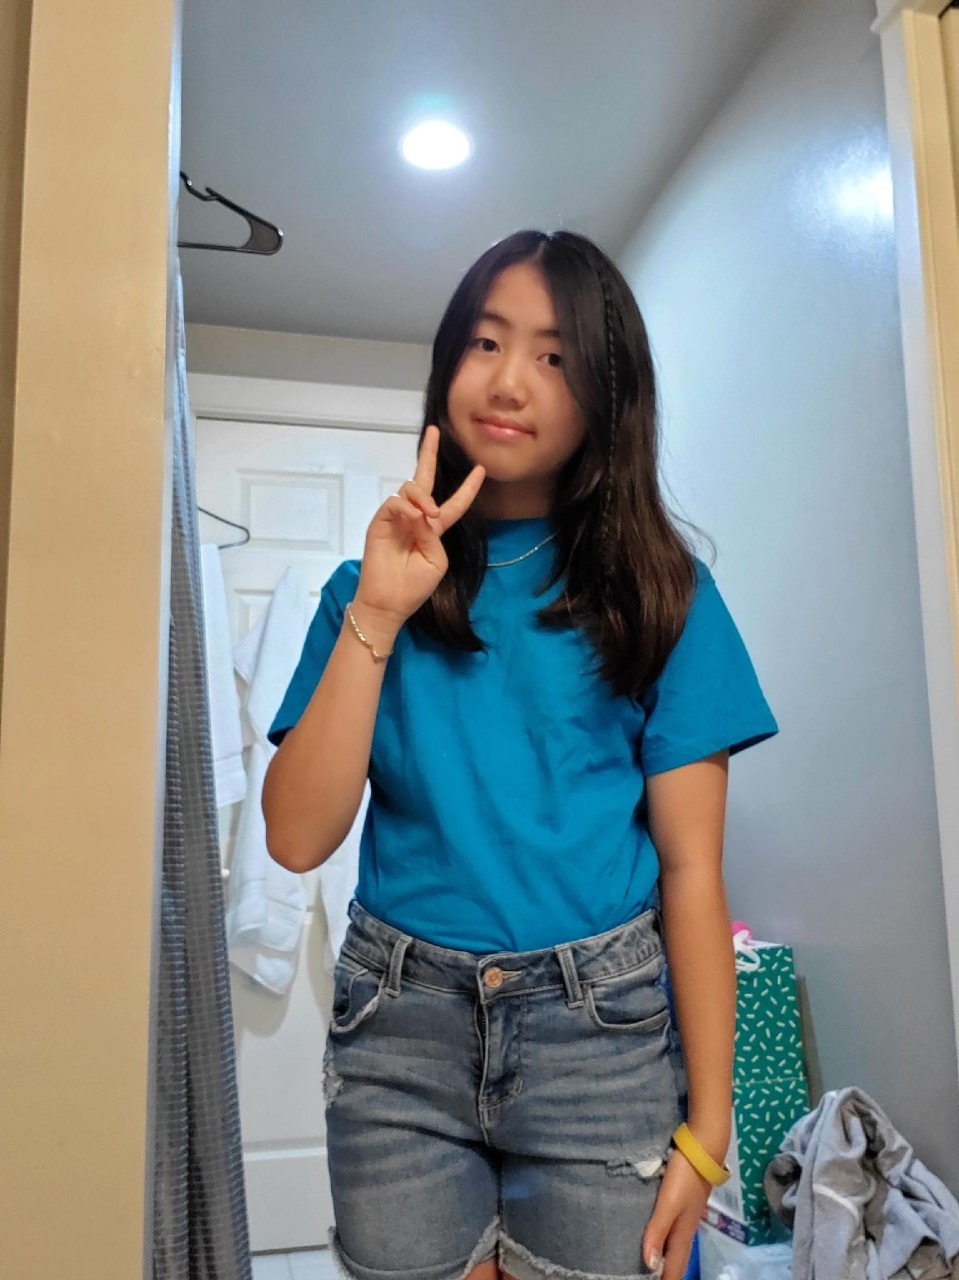 a student doing the peace sign